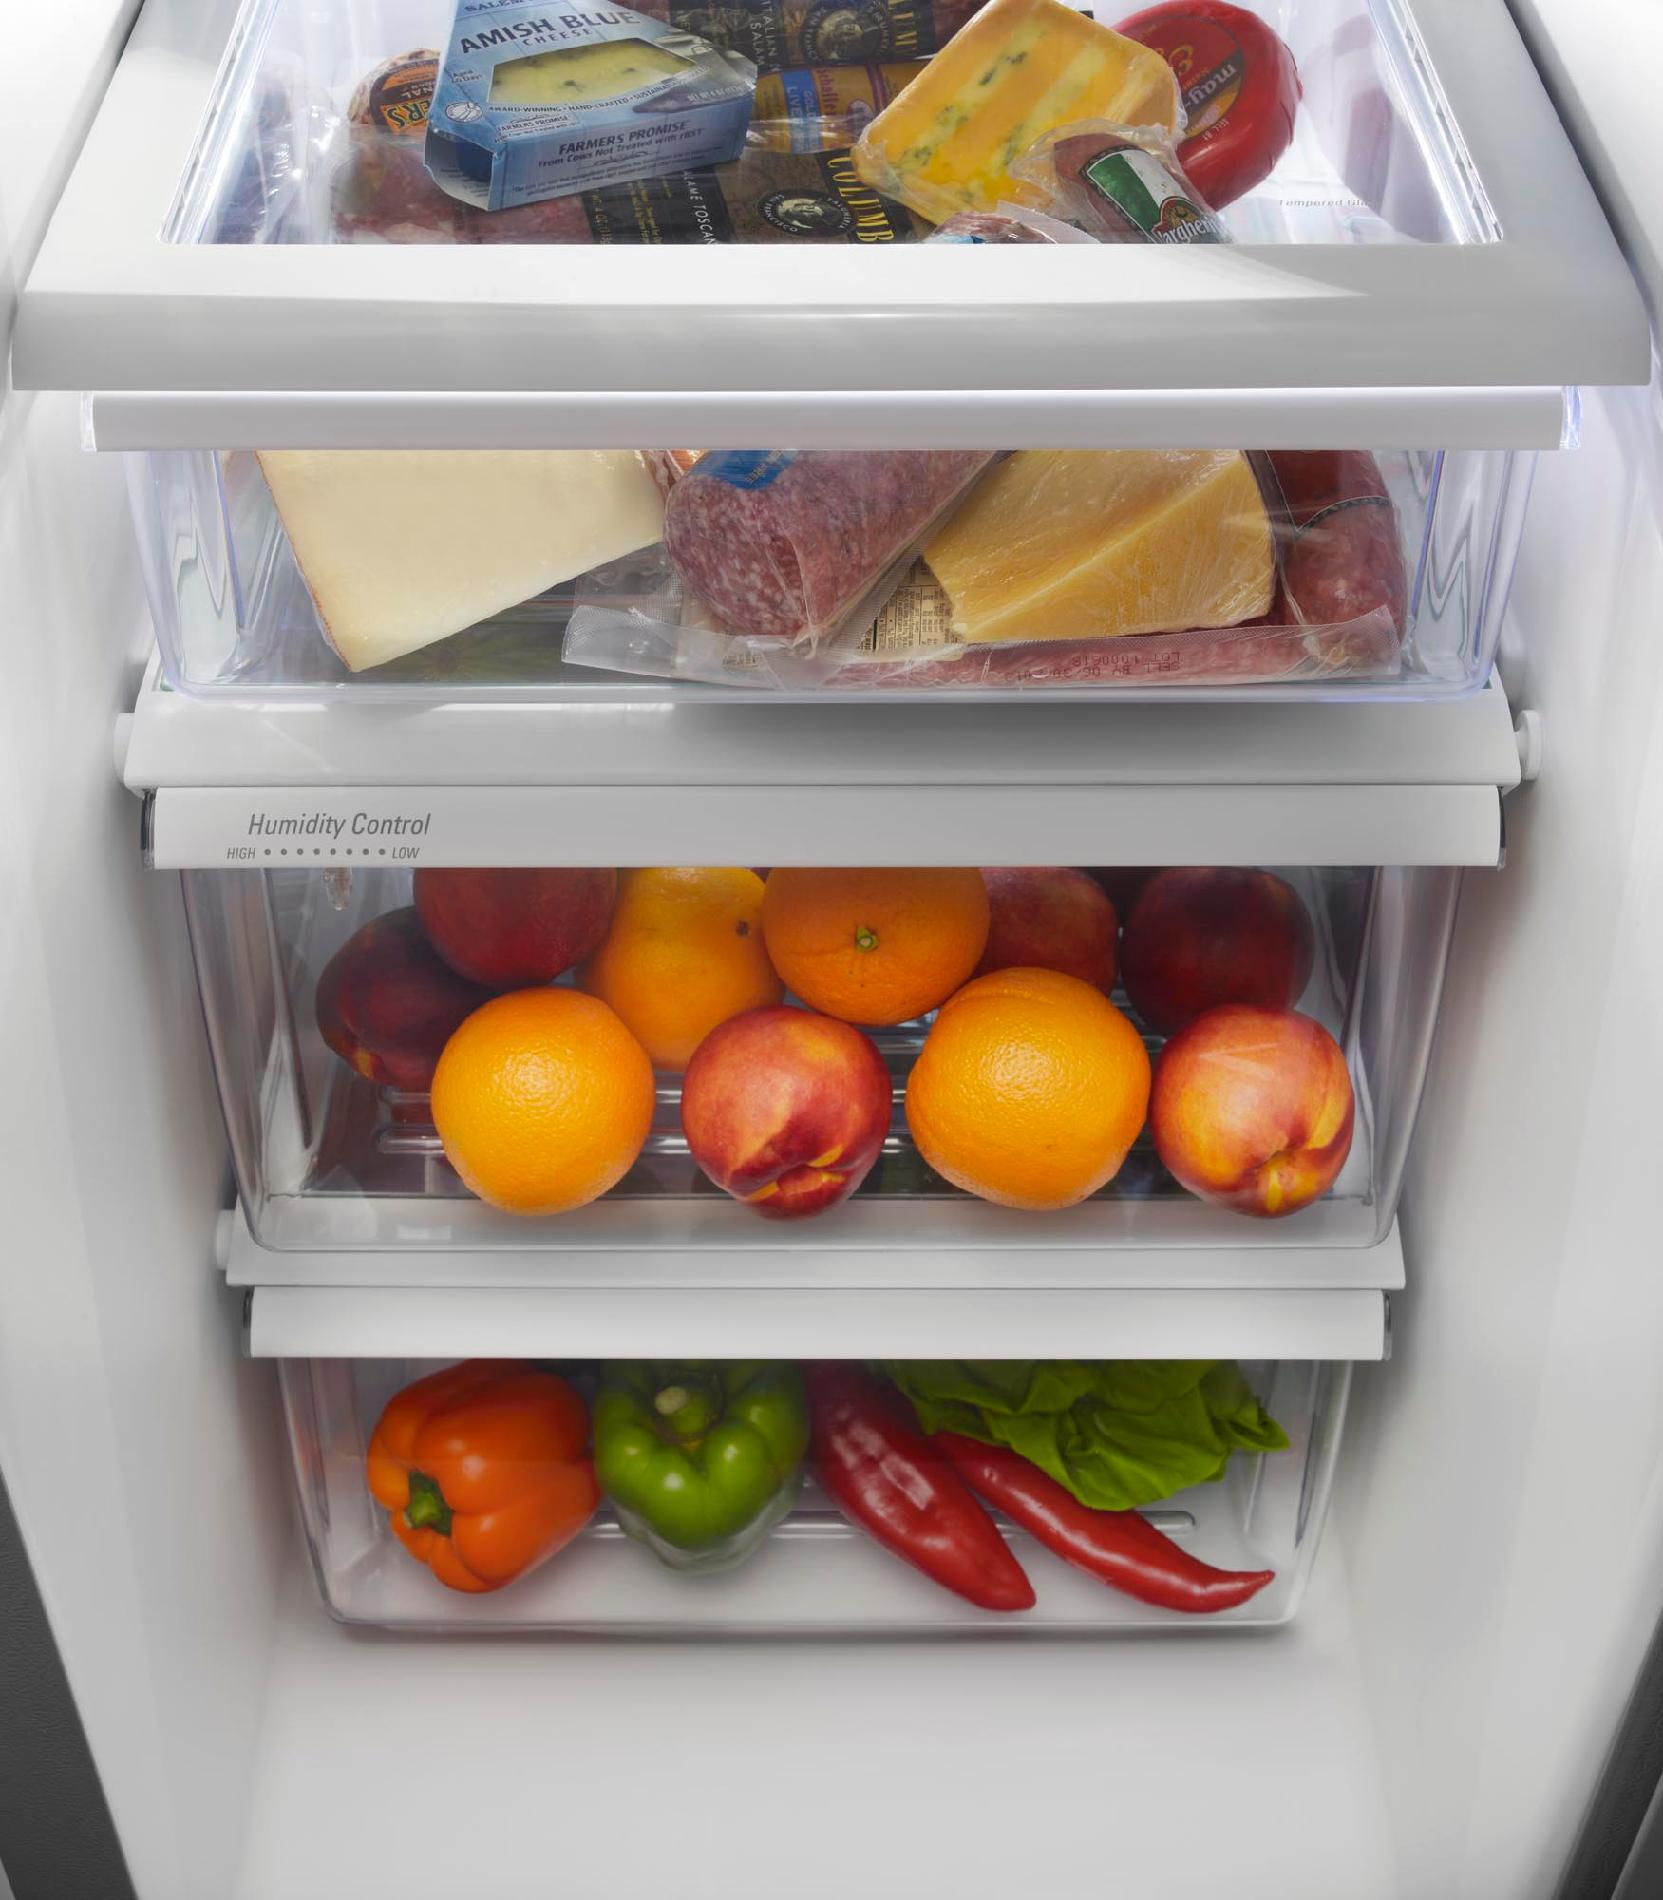 Maytag 22 cu. ft. Side-by-Side Refrigerator w/ Ice & Water Dispenser - Stainless Steel